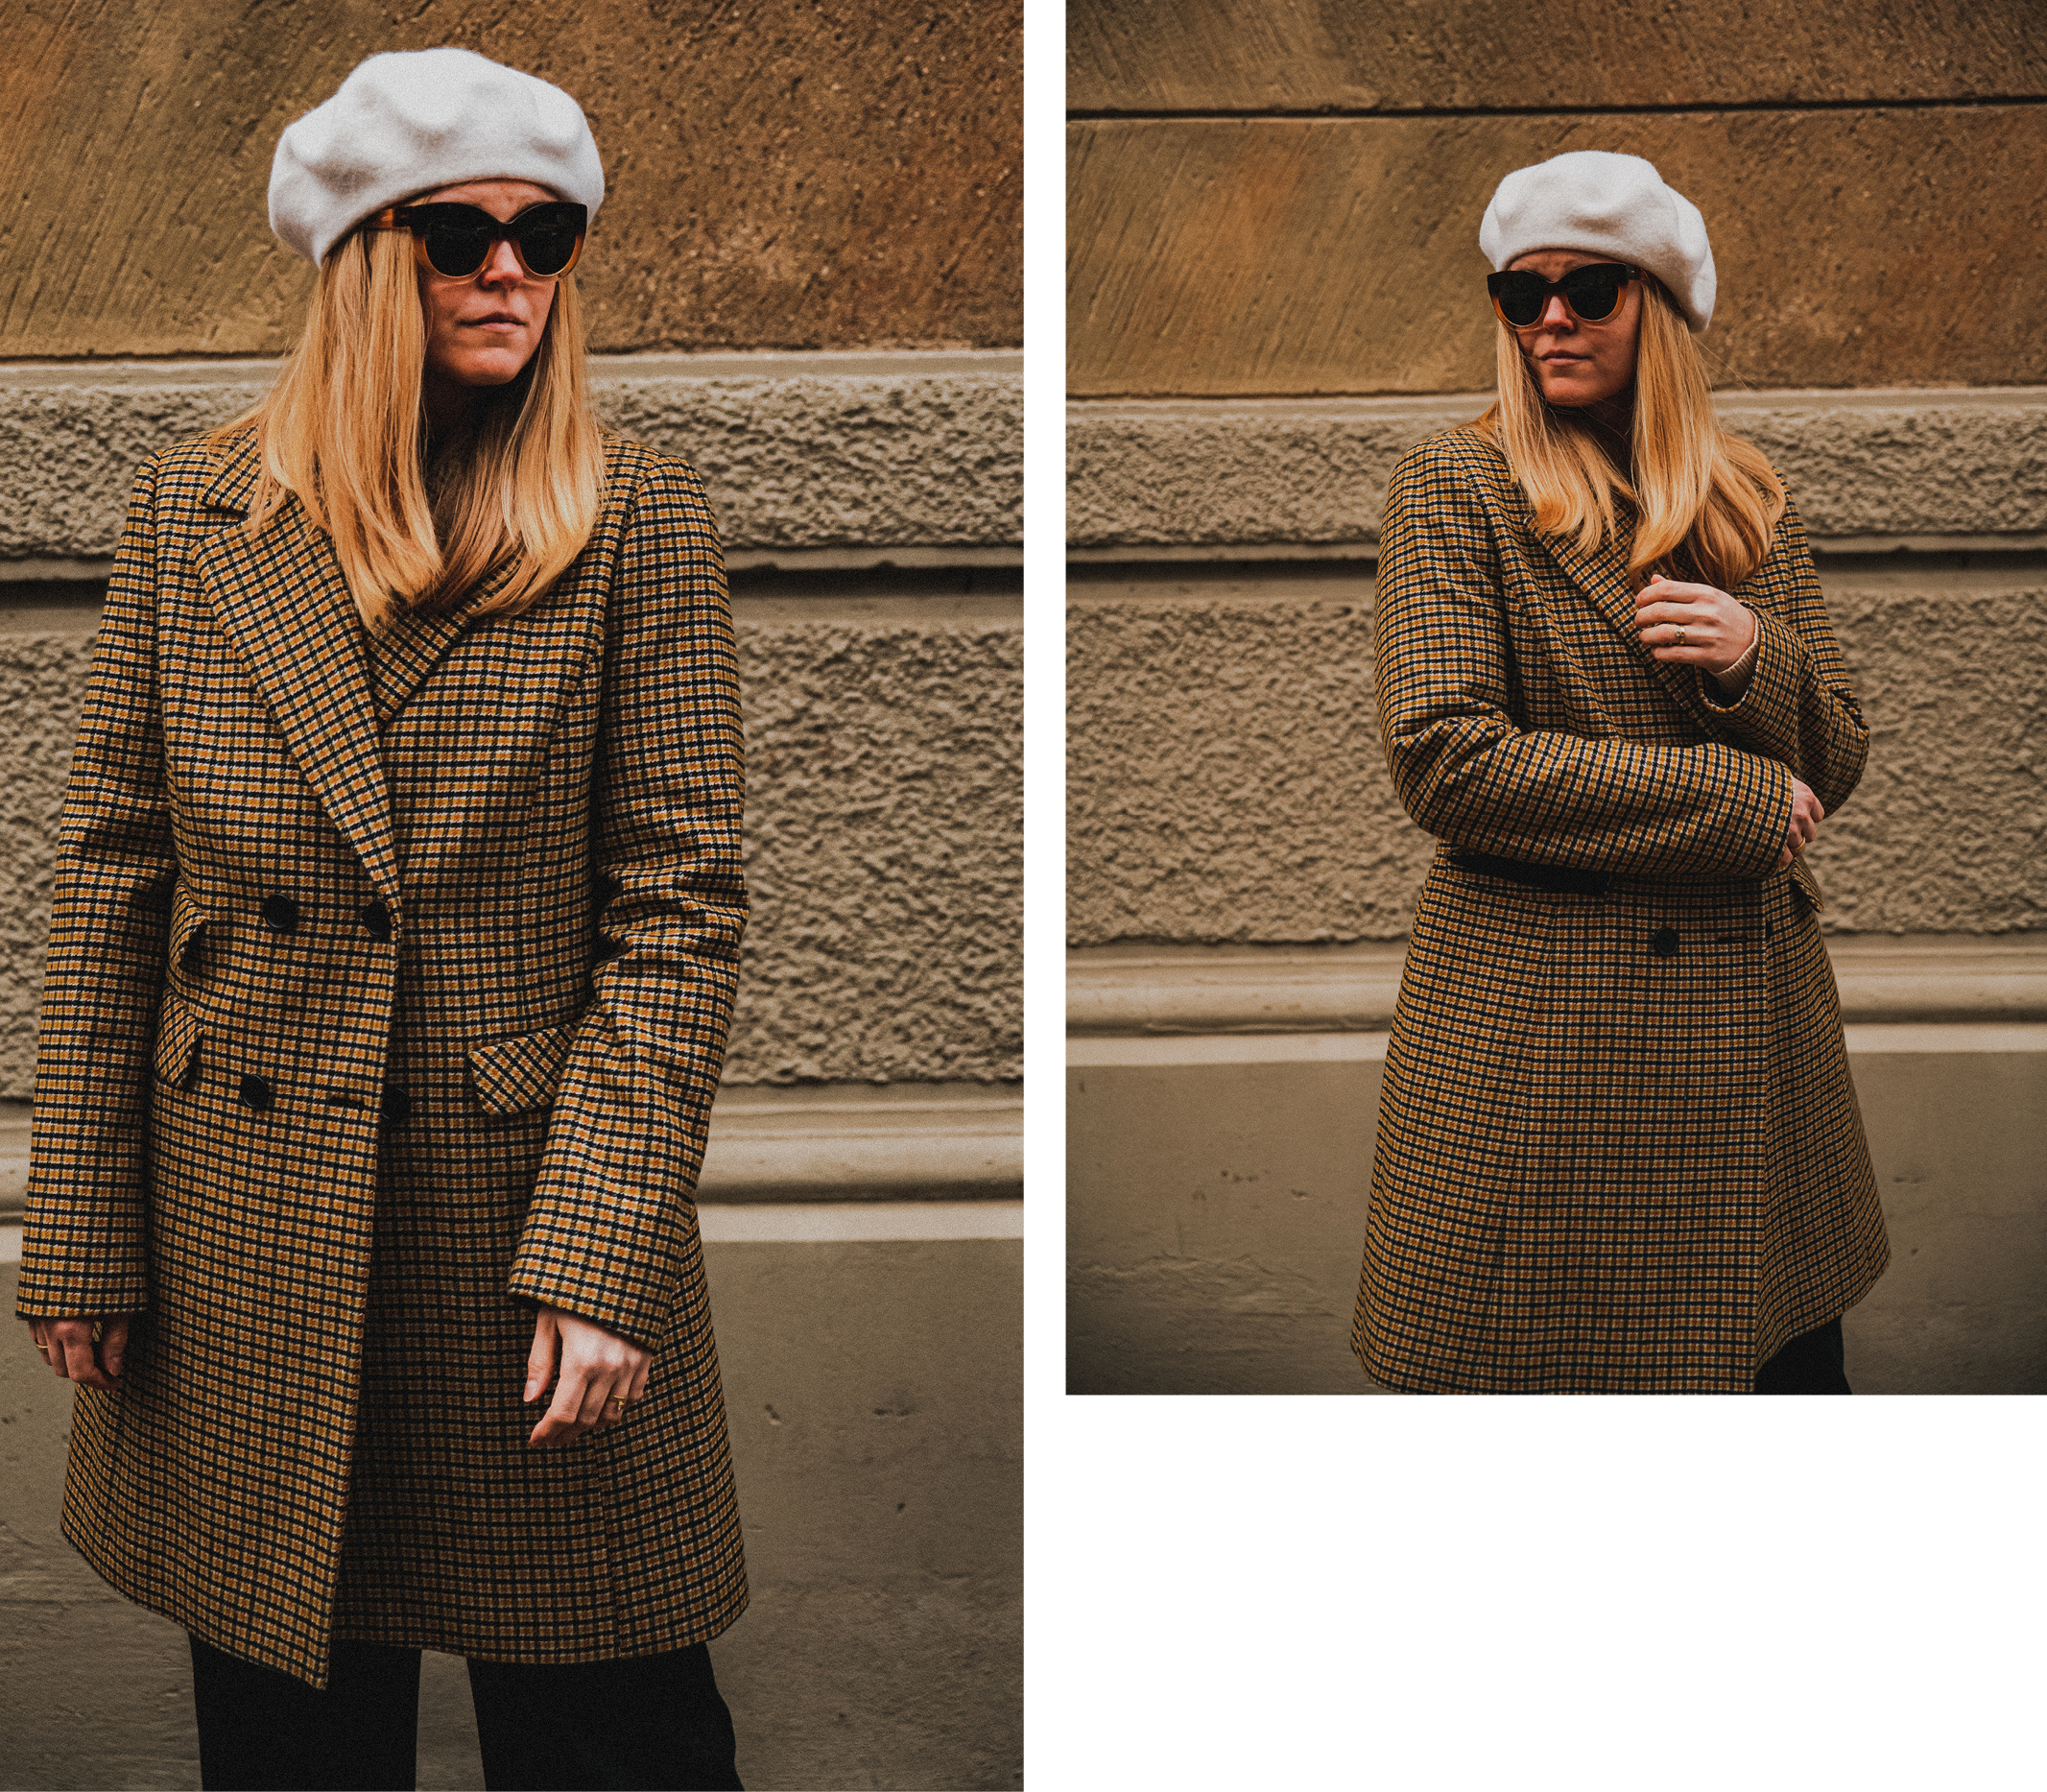 Parisian style inspiration for men and women. Woman wearing beret and checkered double breasted coat